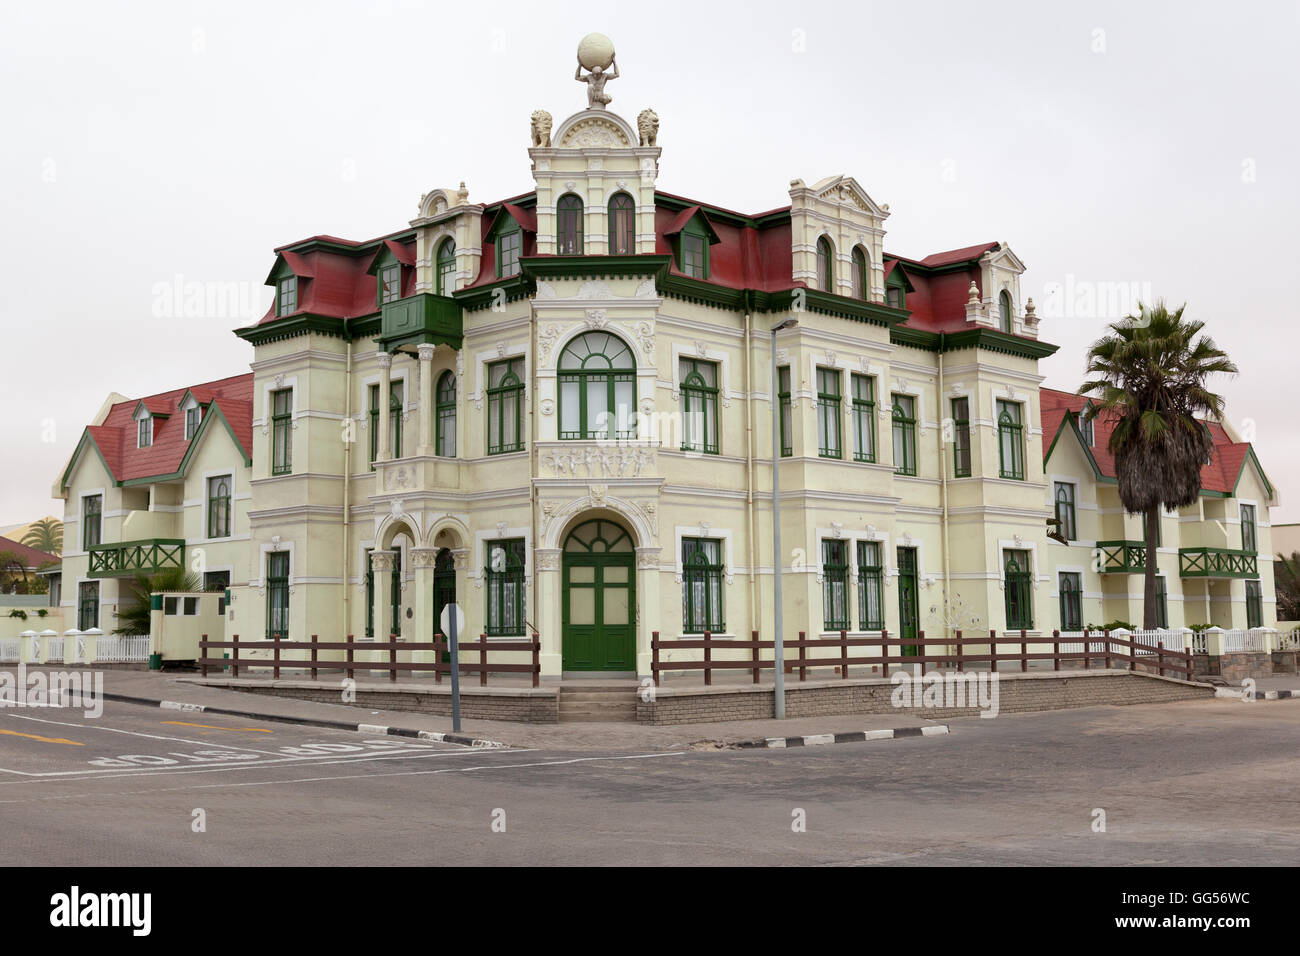 Swakopmund Namibia  Hohenzollernhaus, a national monument built during the German colonisation in neo-baroque style - Stock Image